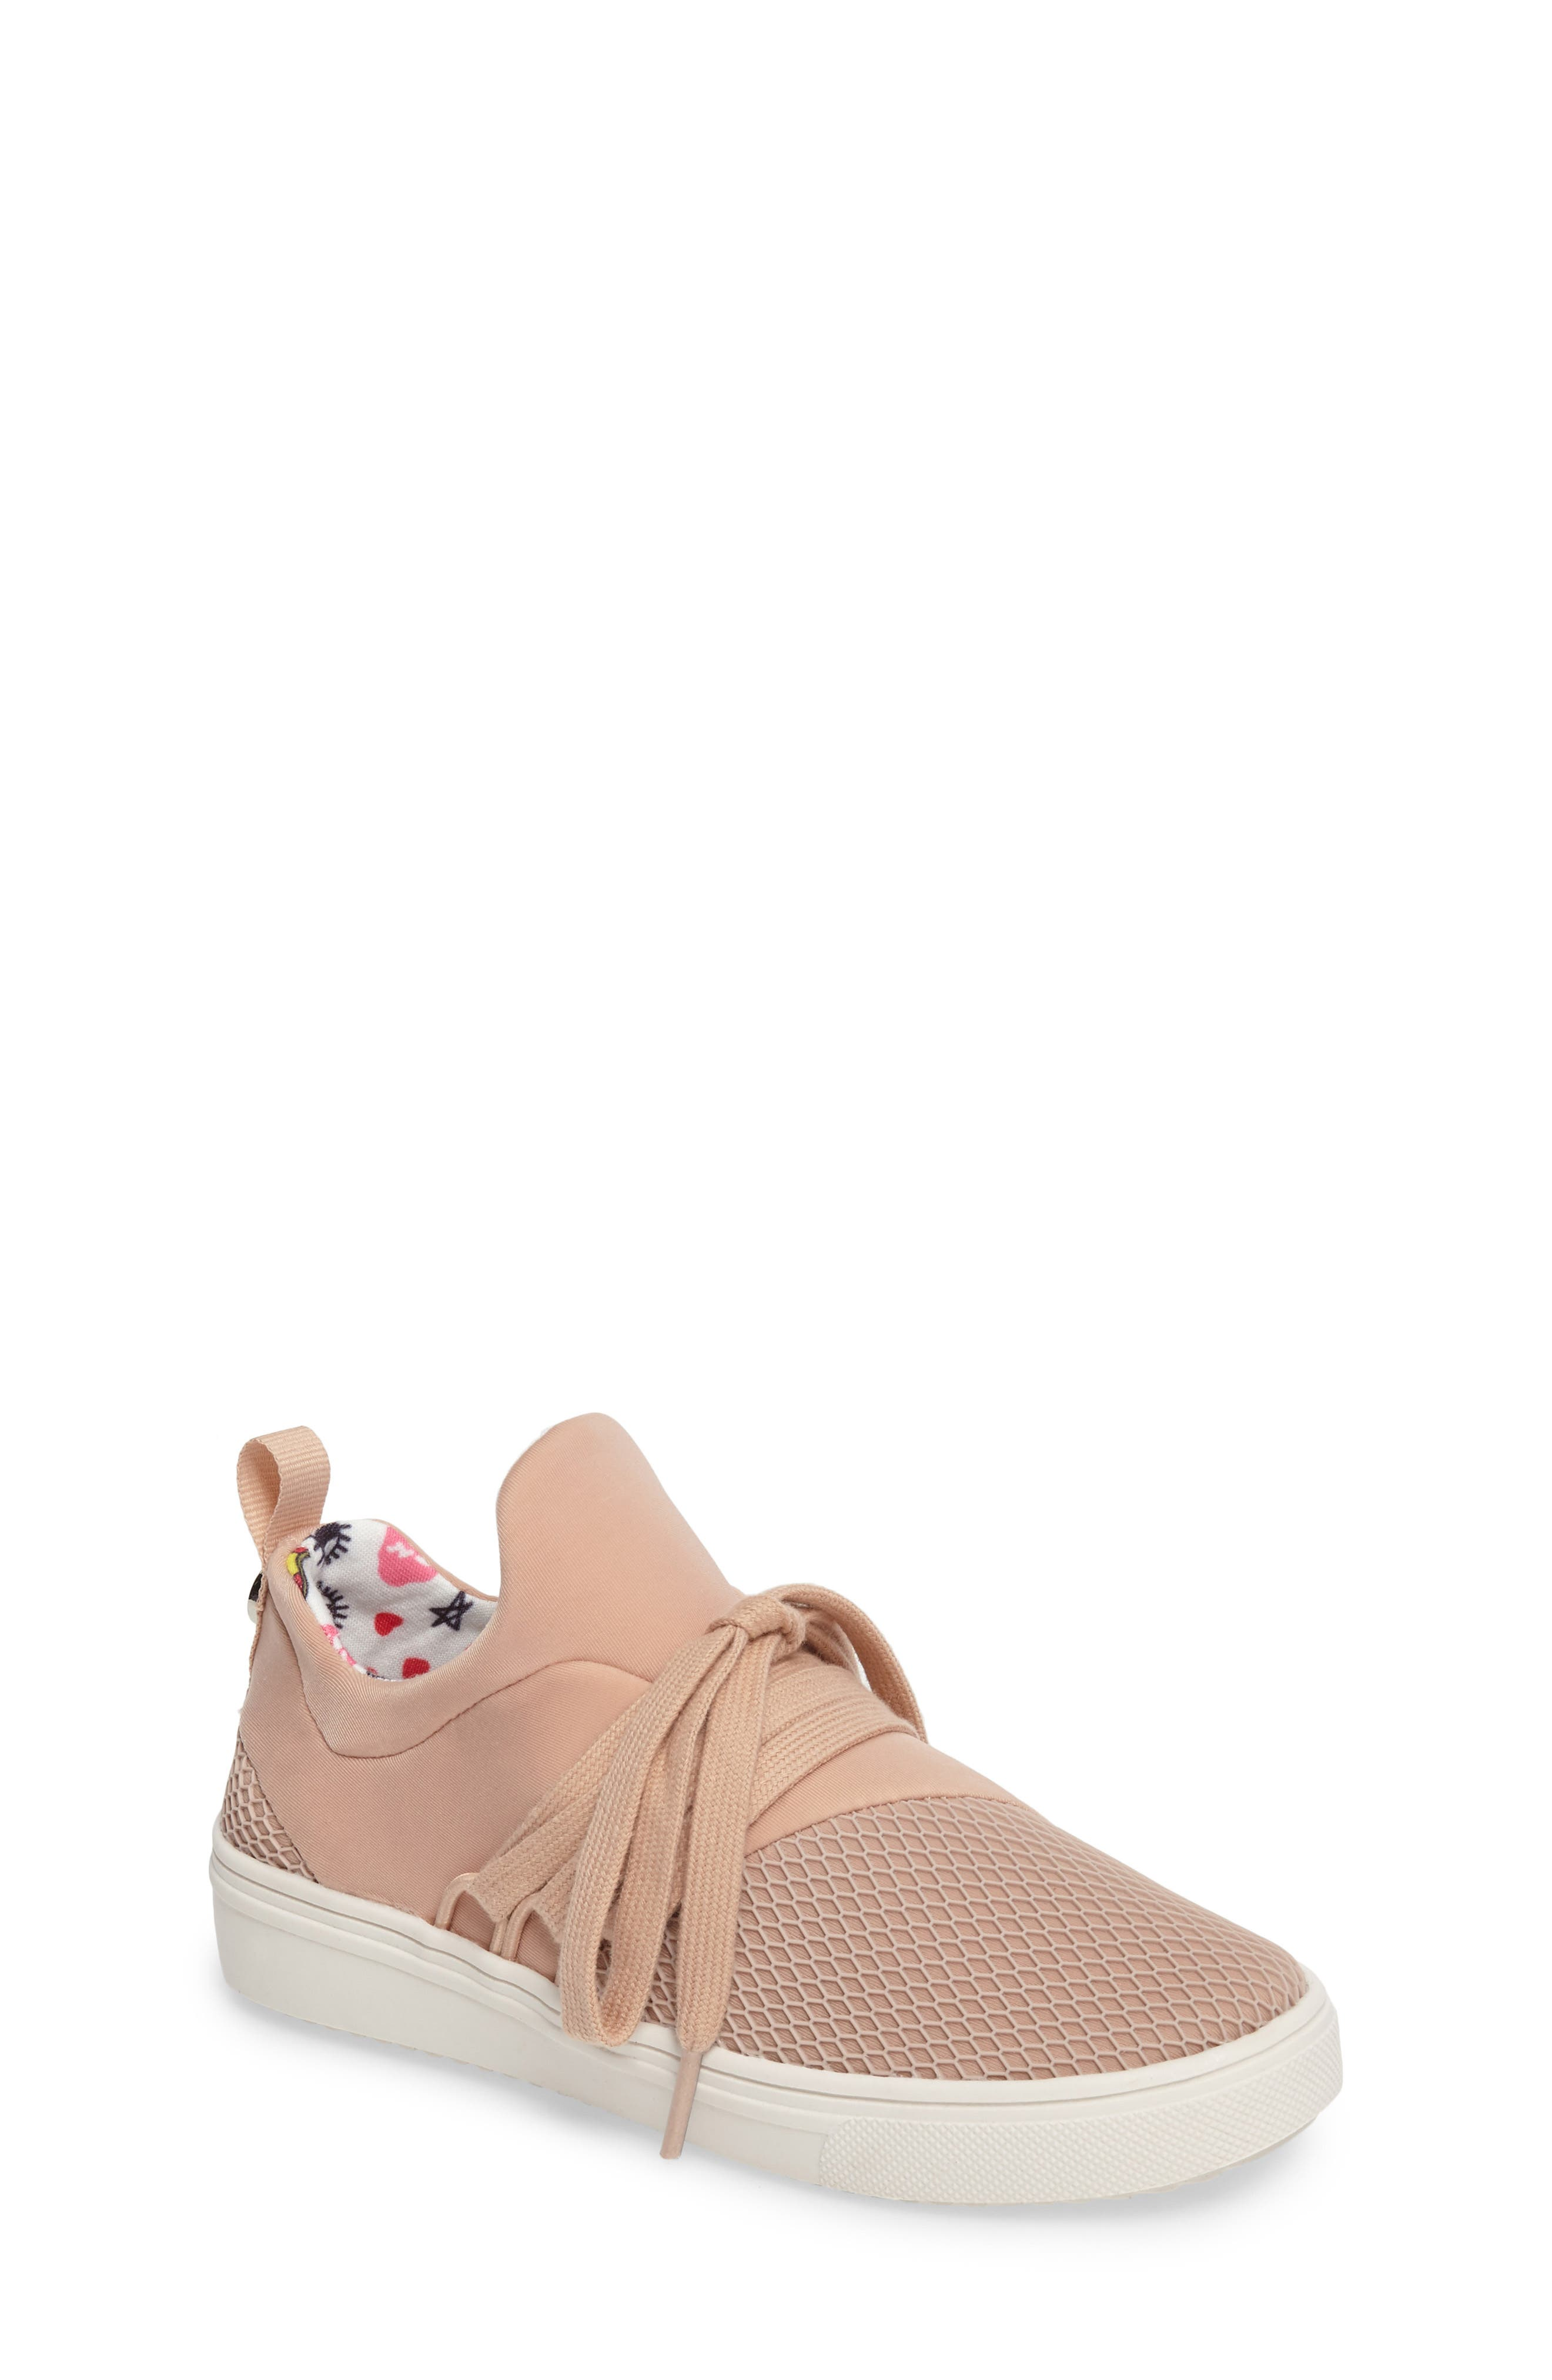 Lancer Mesh Sock-Fit Sneaker,                             Main thumbnail 1, color,                             Blush